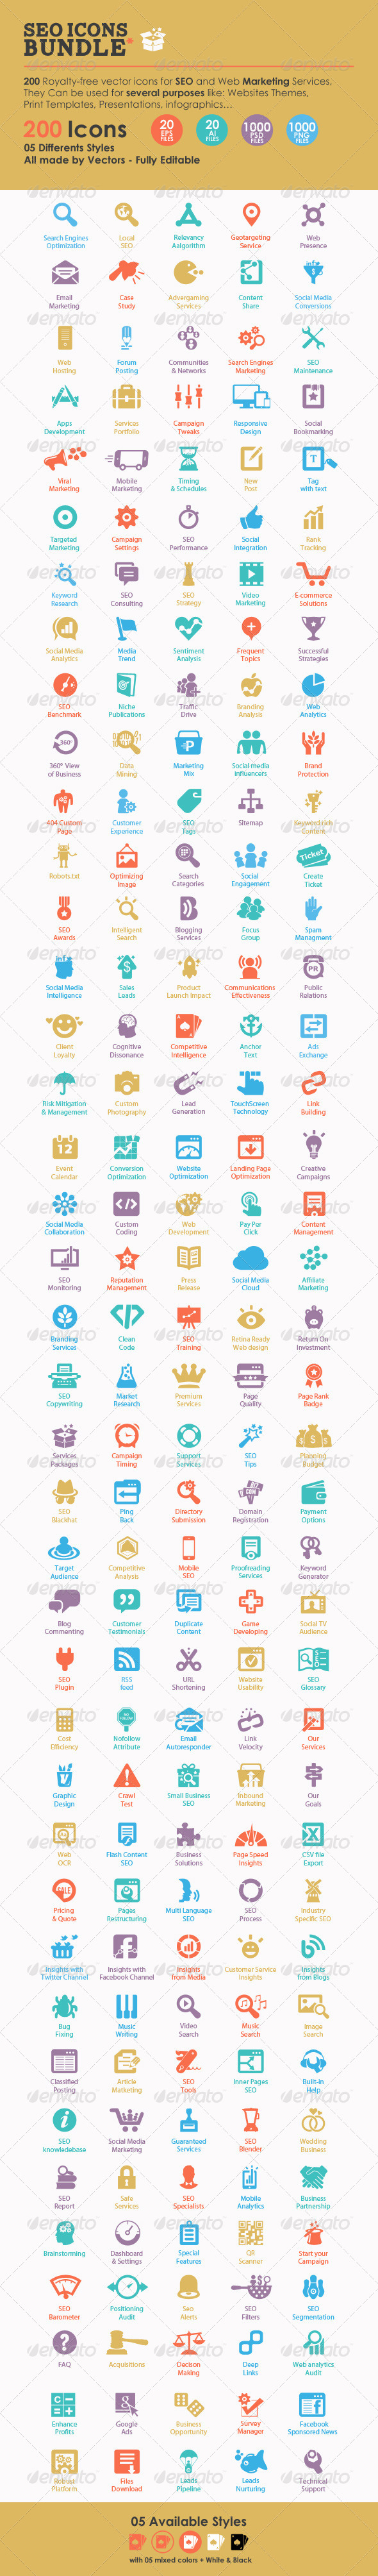 SEO Icons Bundle - Web Icons